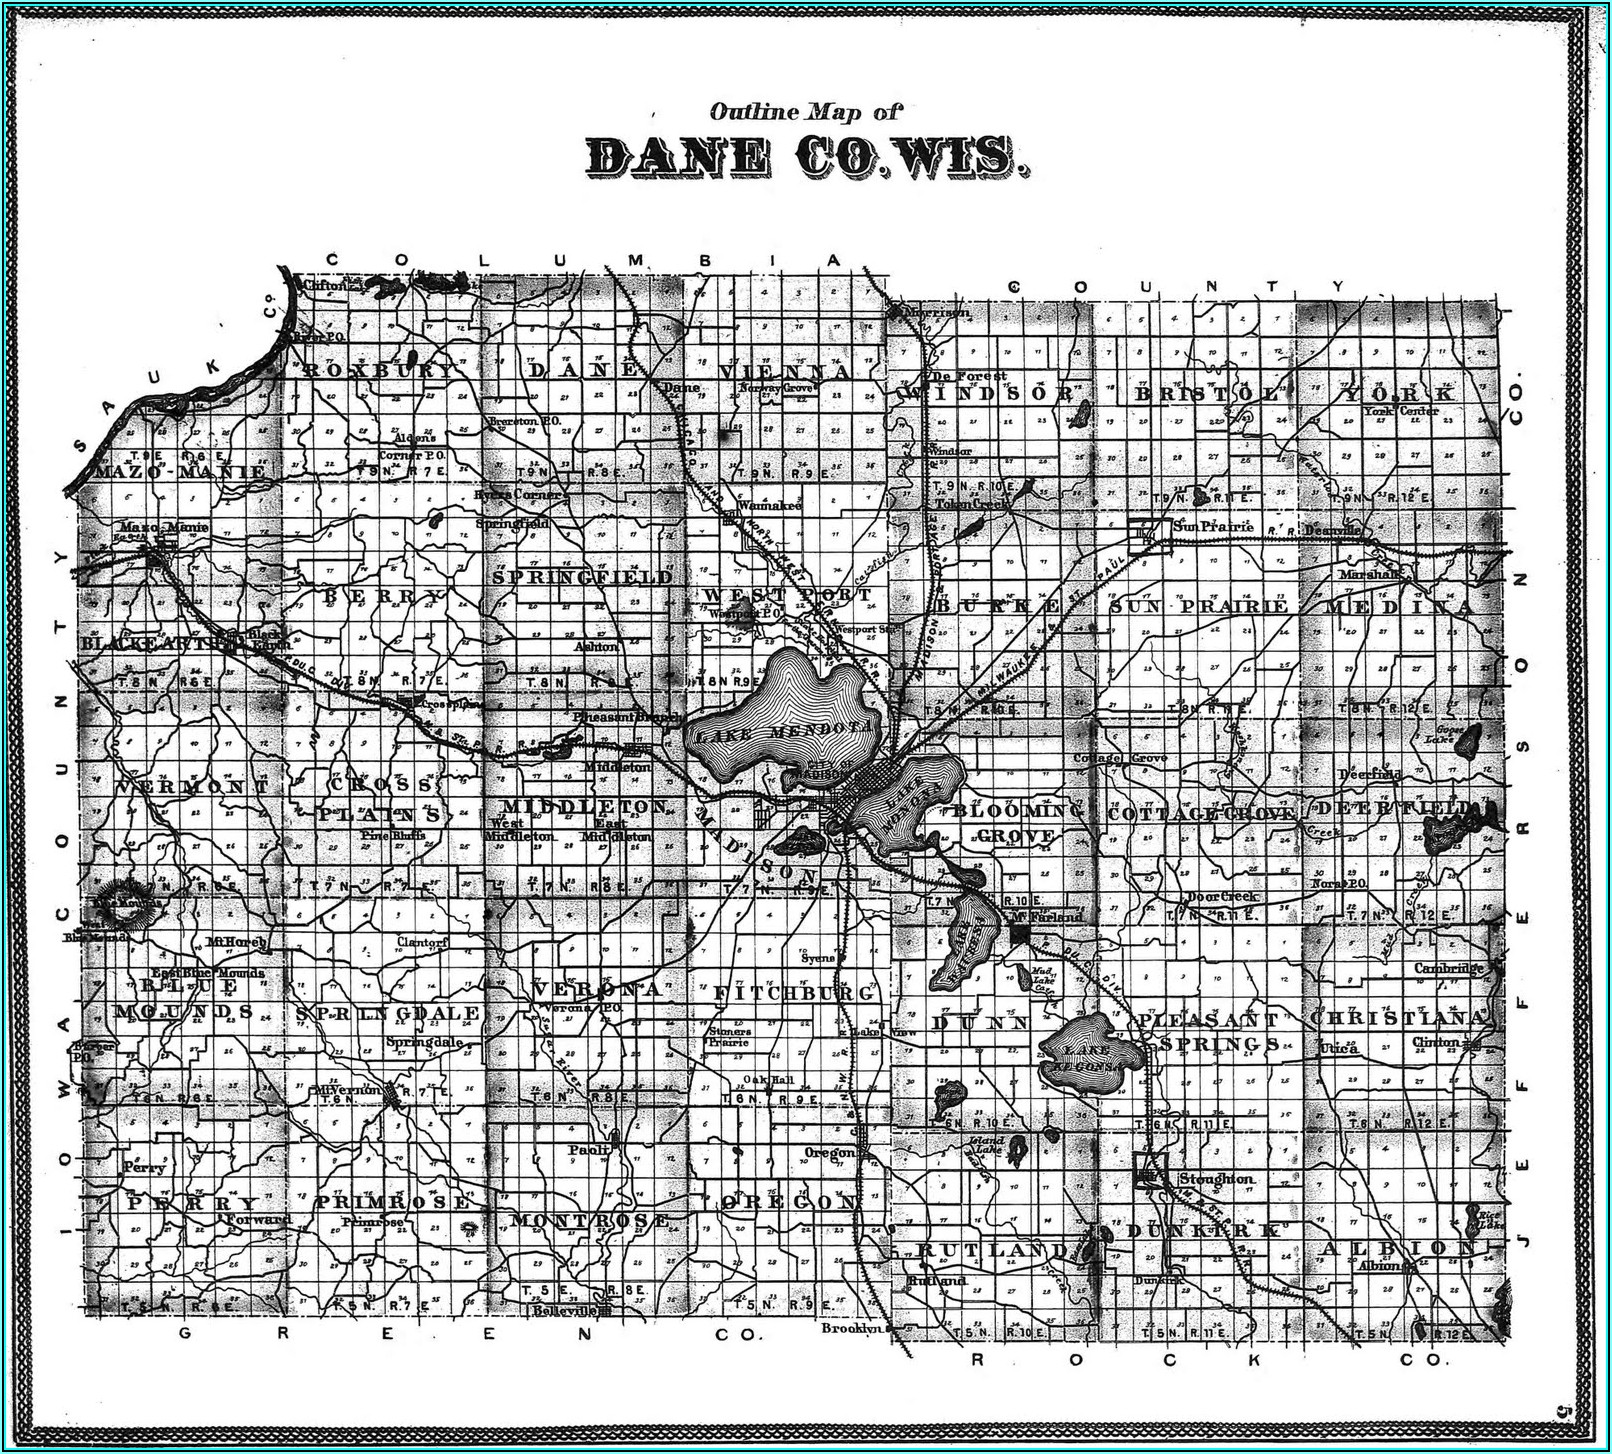 Plat Map Of Dane County Wisconsin